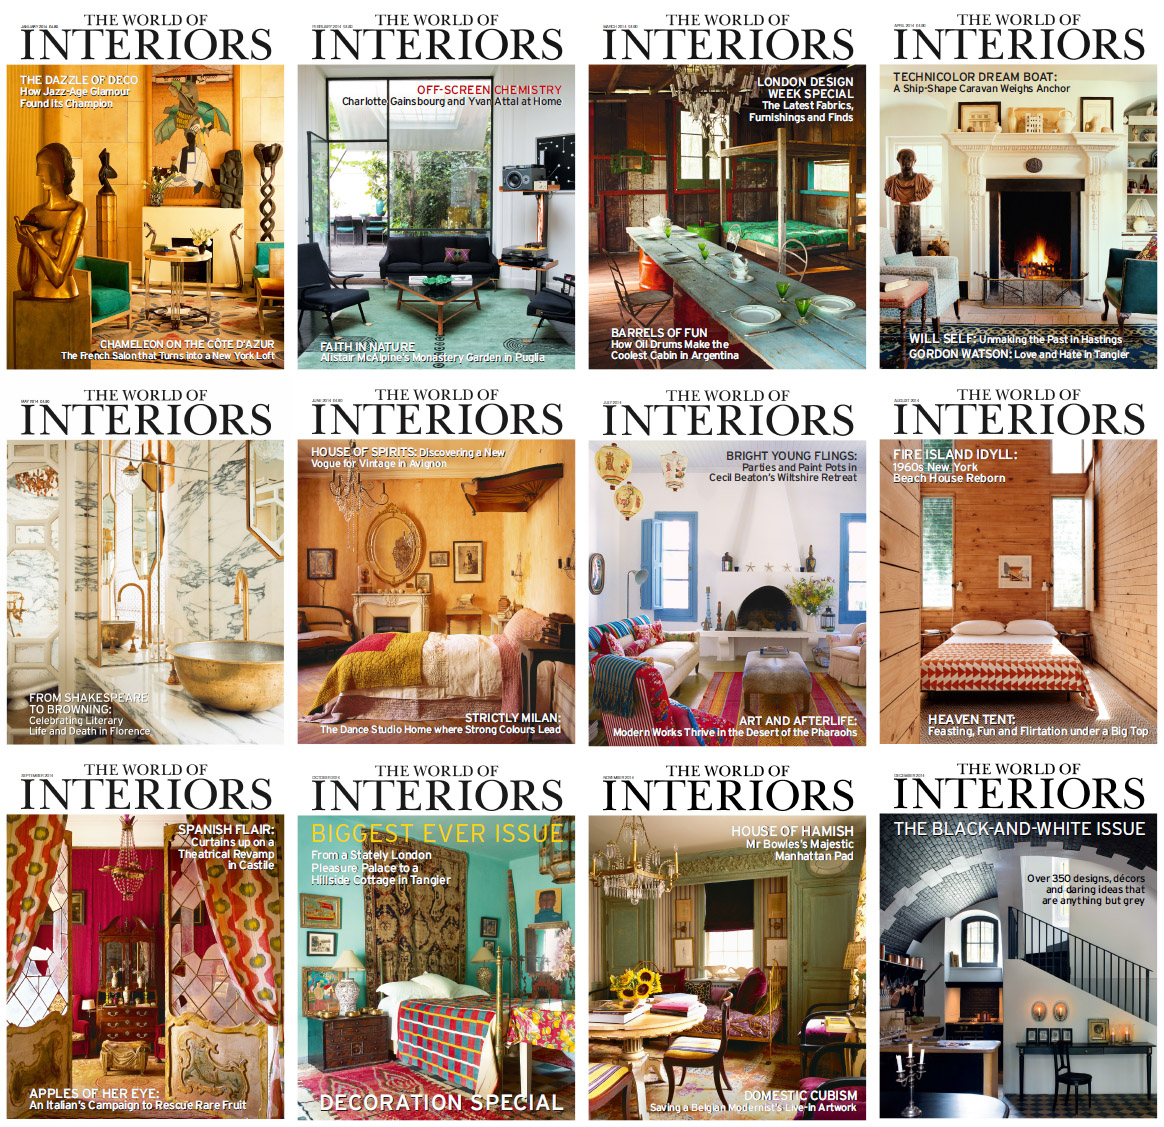 The World of Interiors Magazine - Full Year 2014 Issues Collection free download